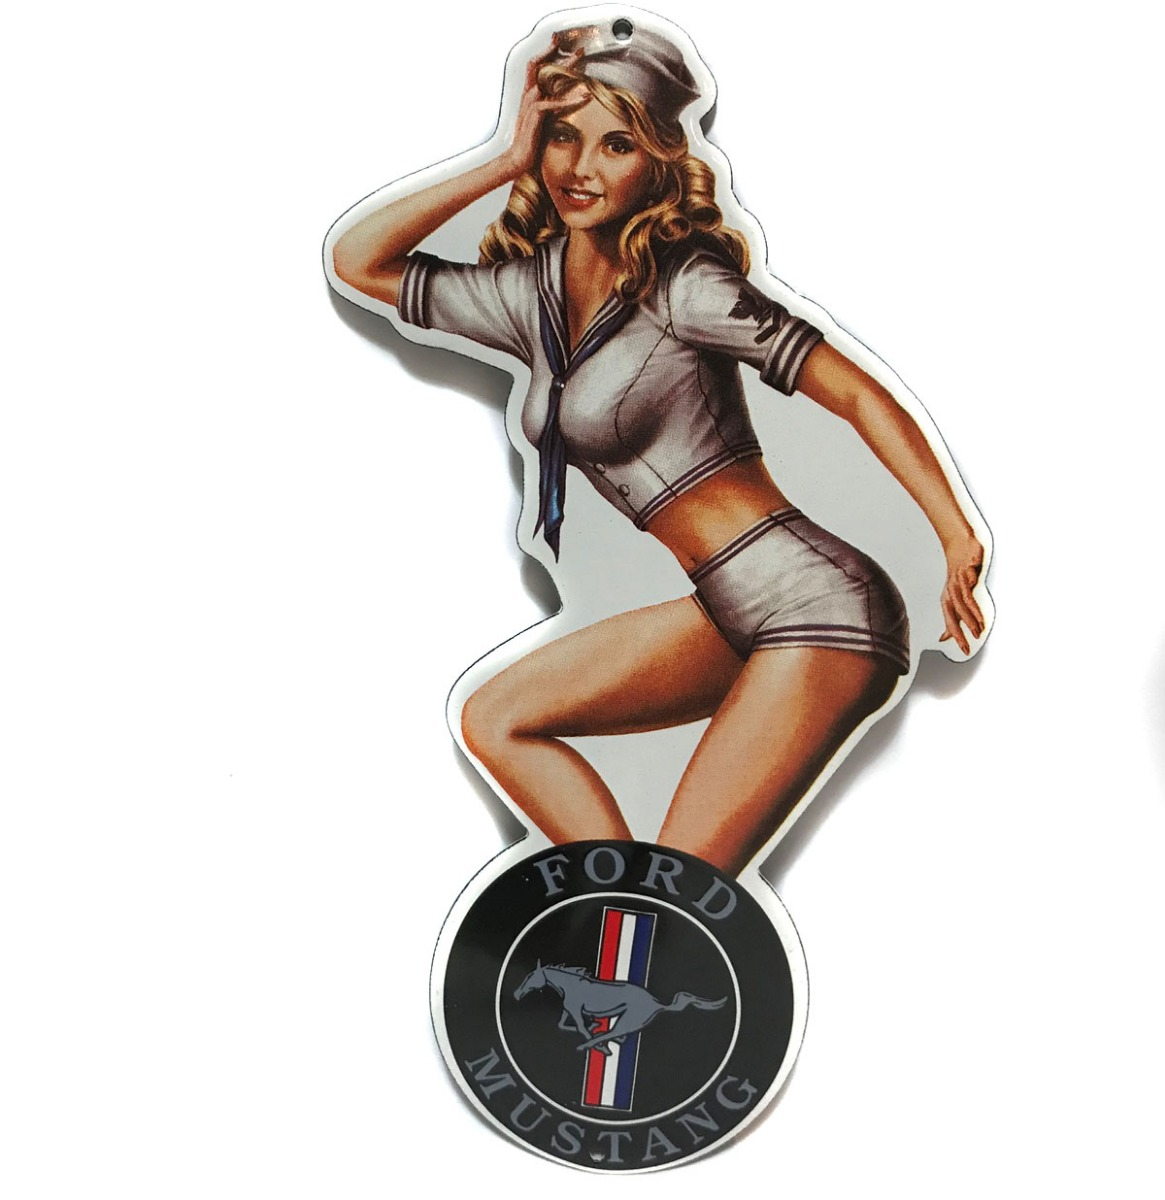 Ford Mustang Pin-Up Emaille Bord 20 x 11 cm